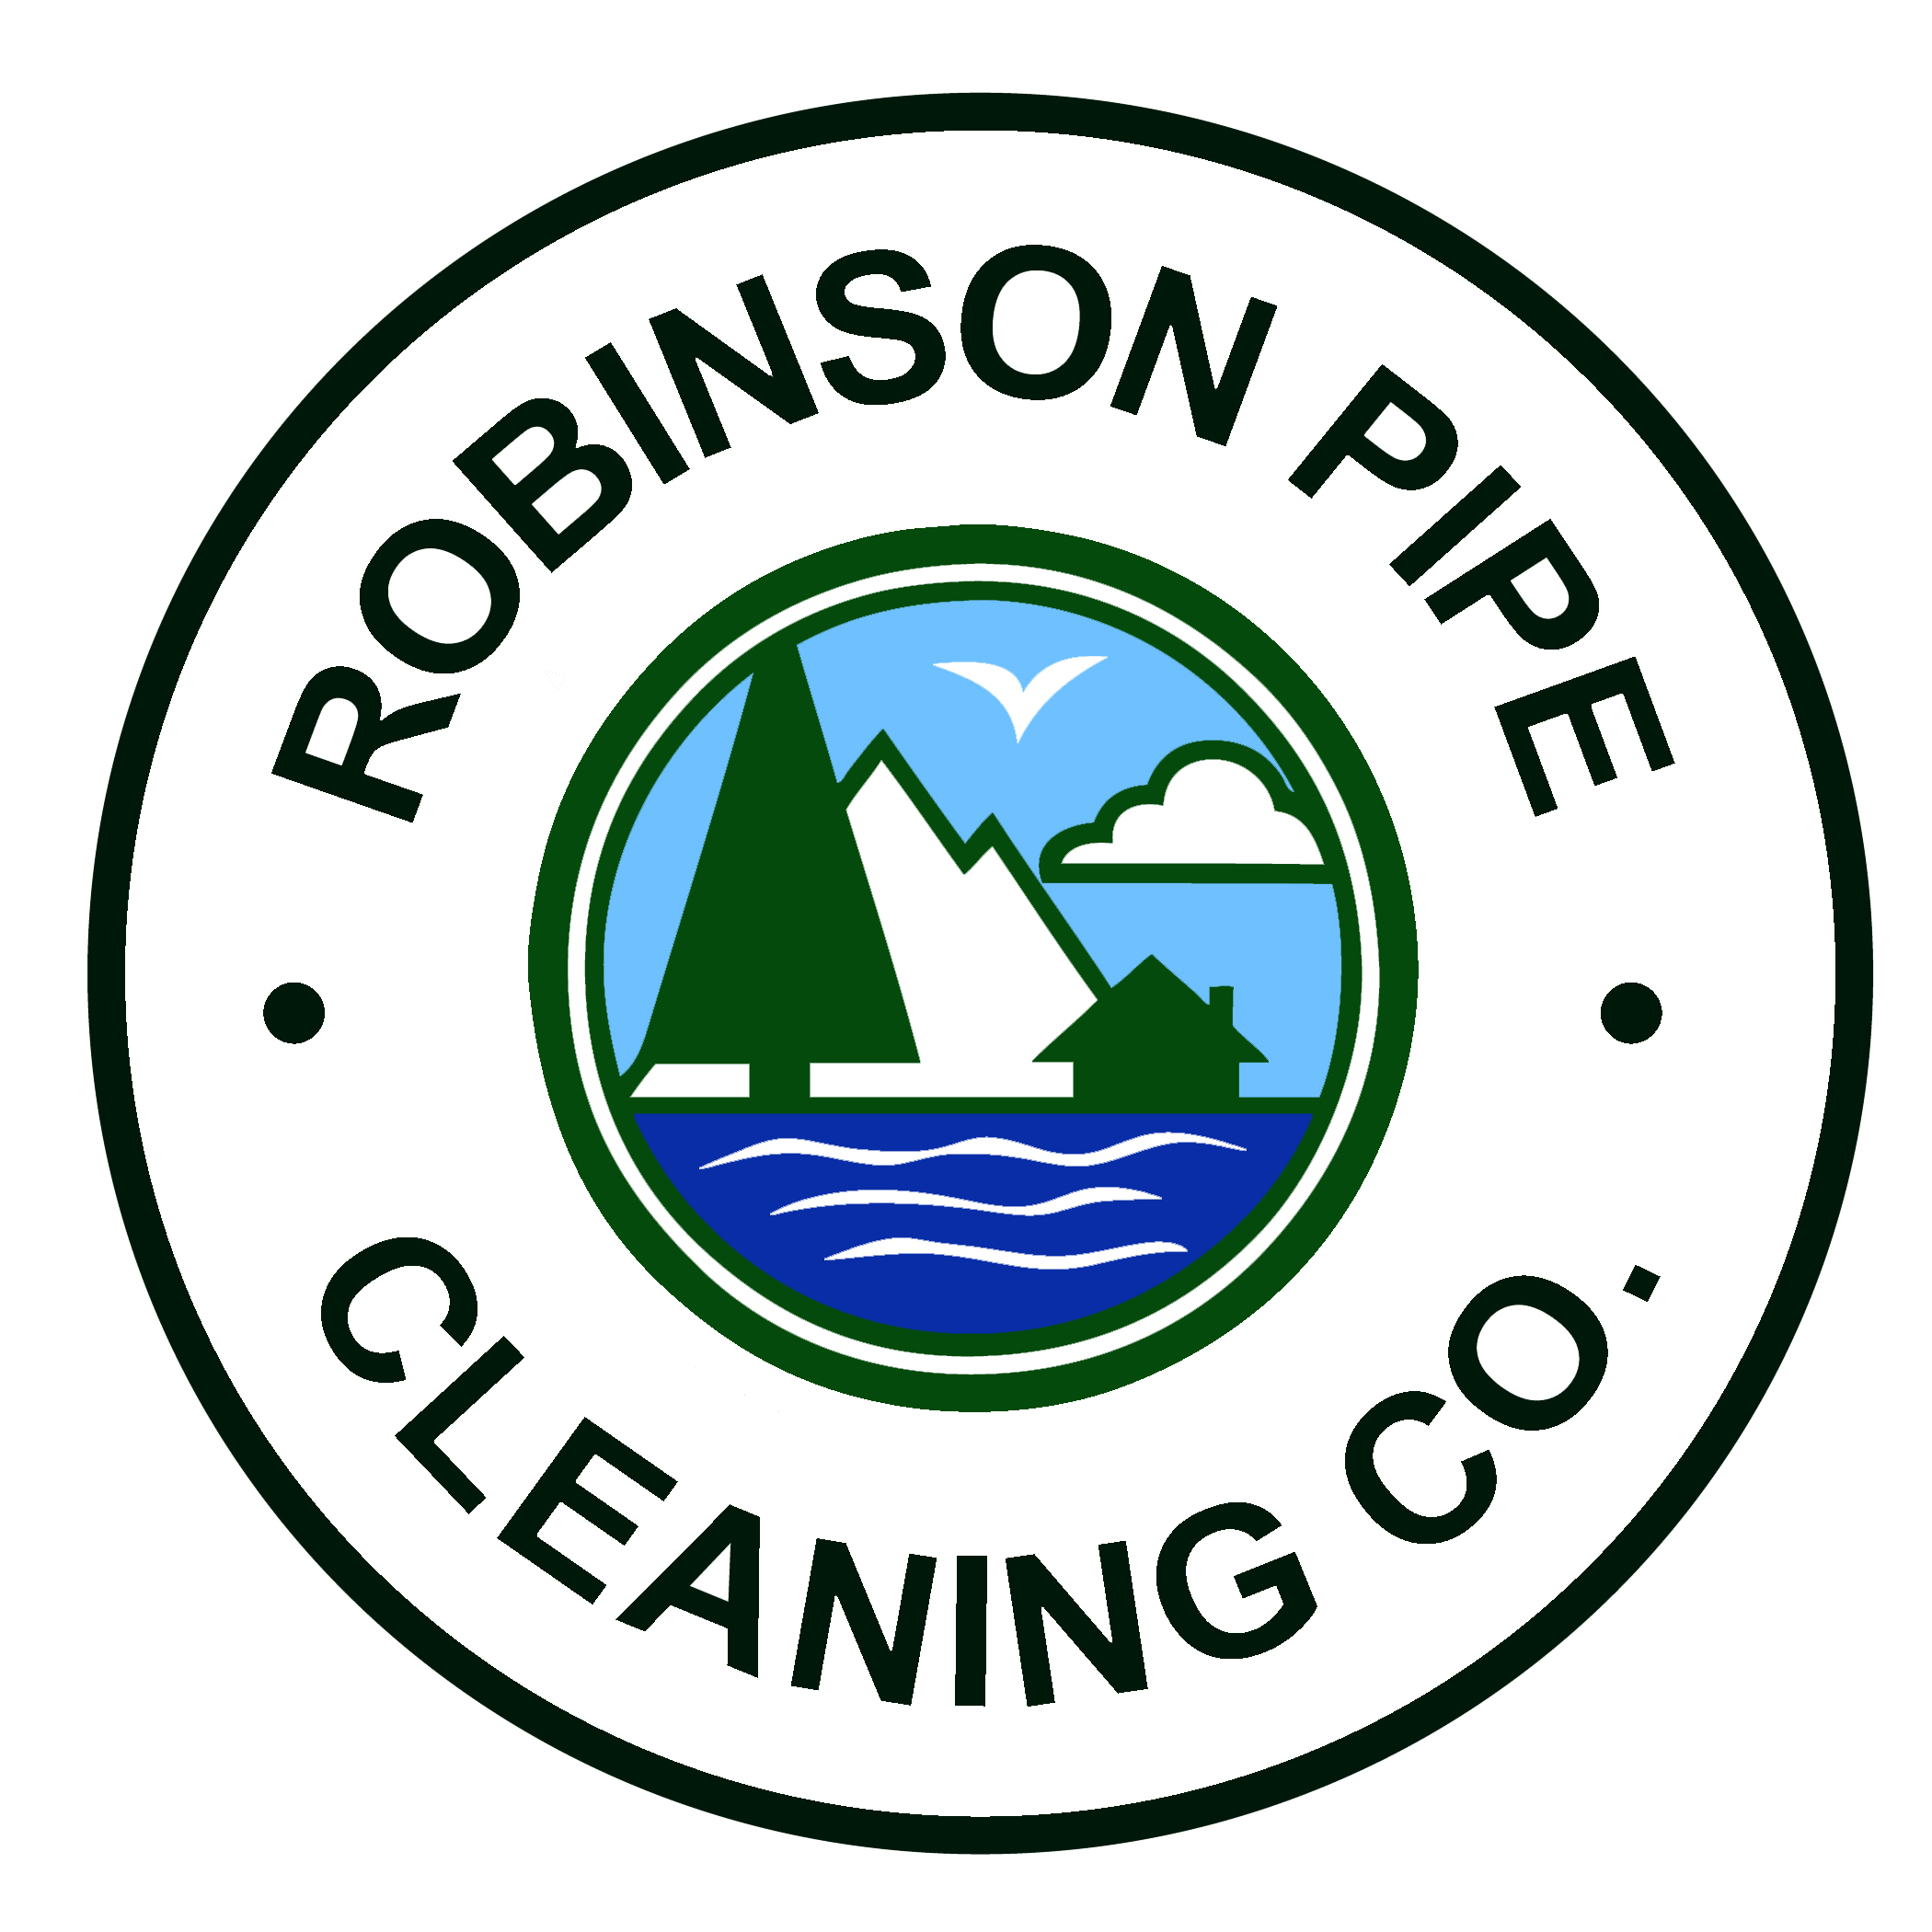 Robinson Pipe Cleaning Co.